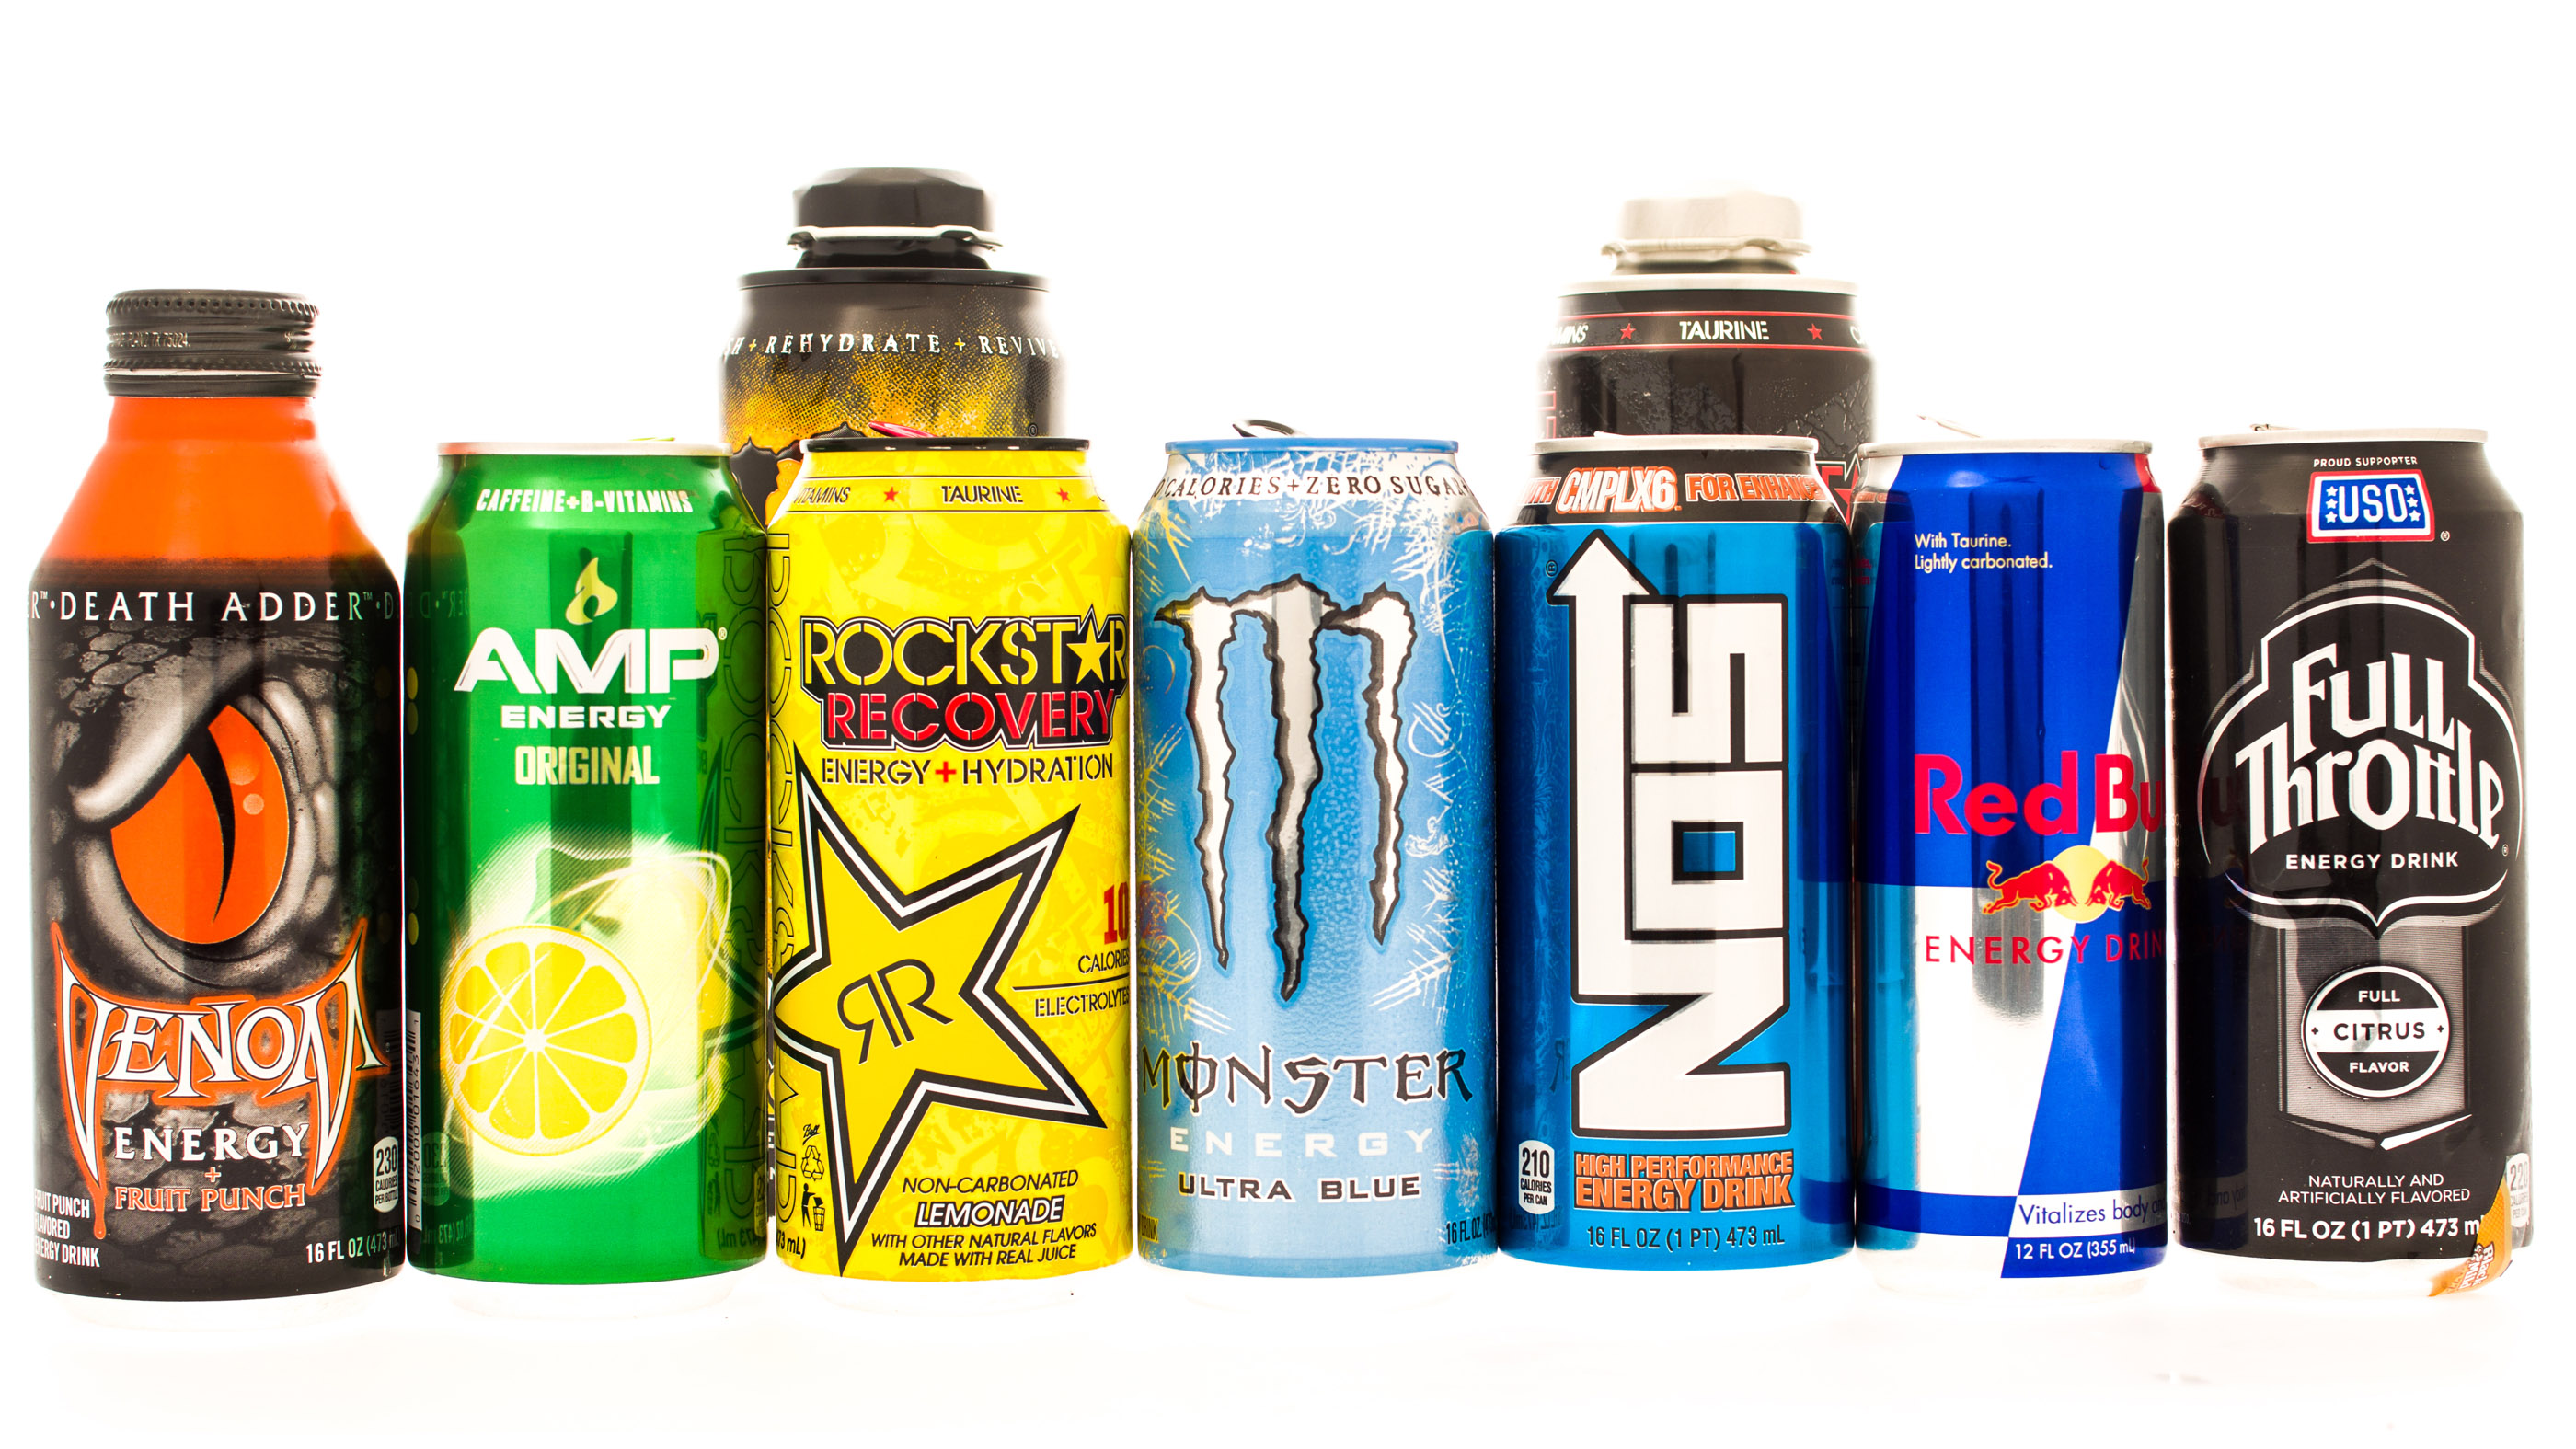 Do you drink energy drinks?